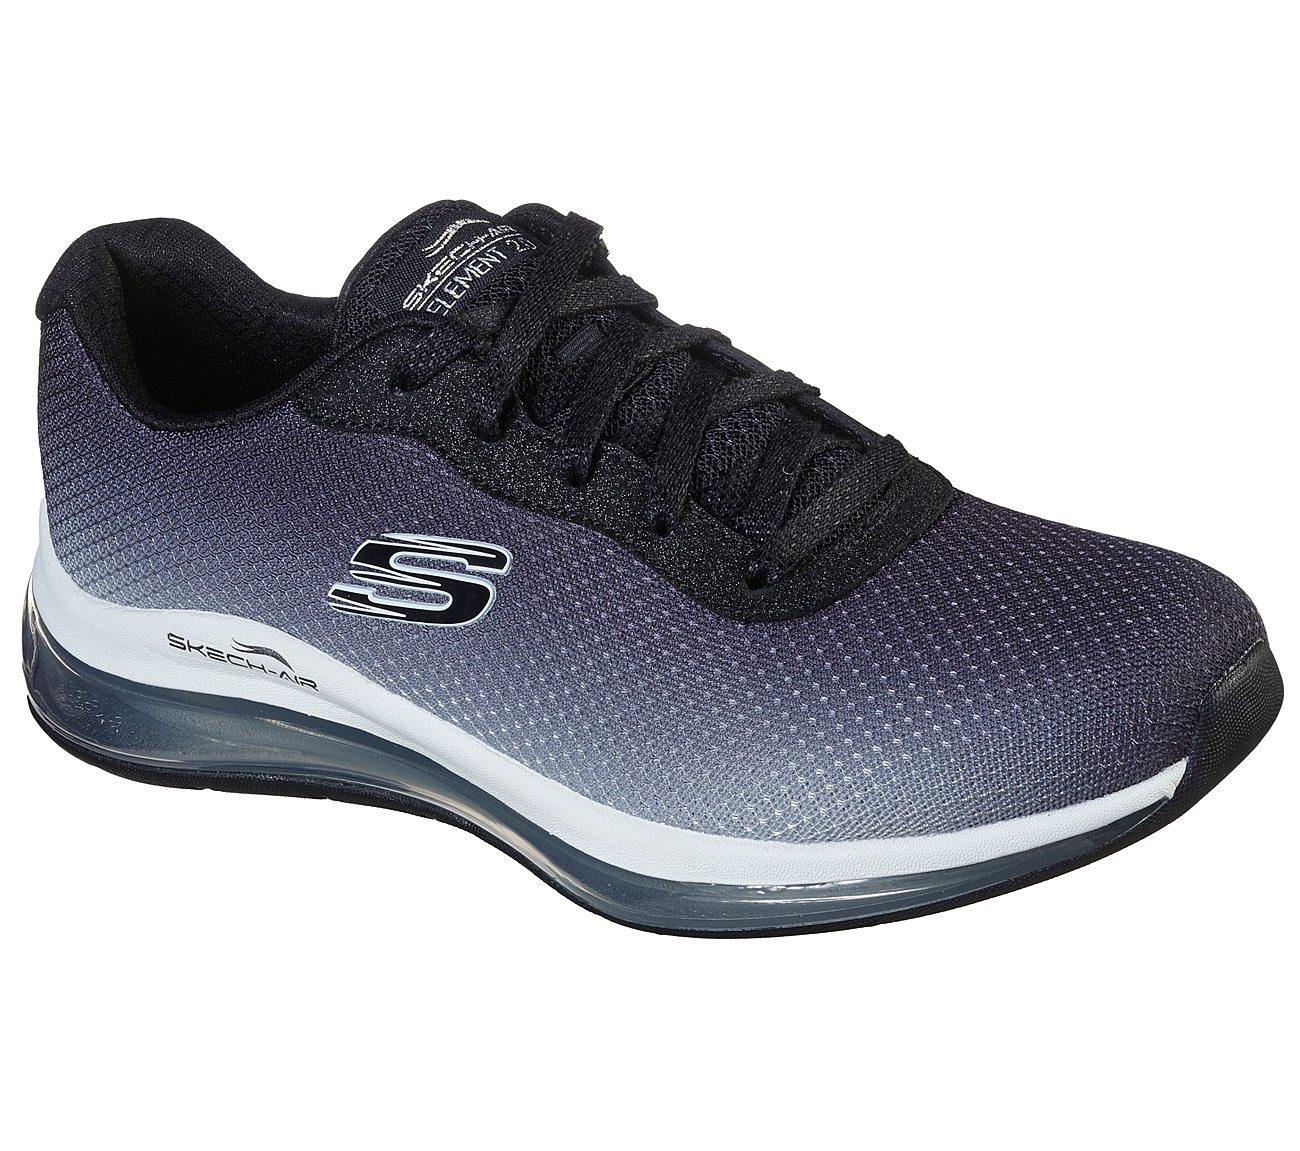 enlace antiguo Ejercer  Buy SKECHERS Skech-Air Element 2.0 Skech-Air Shoes